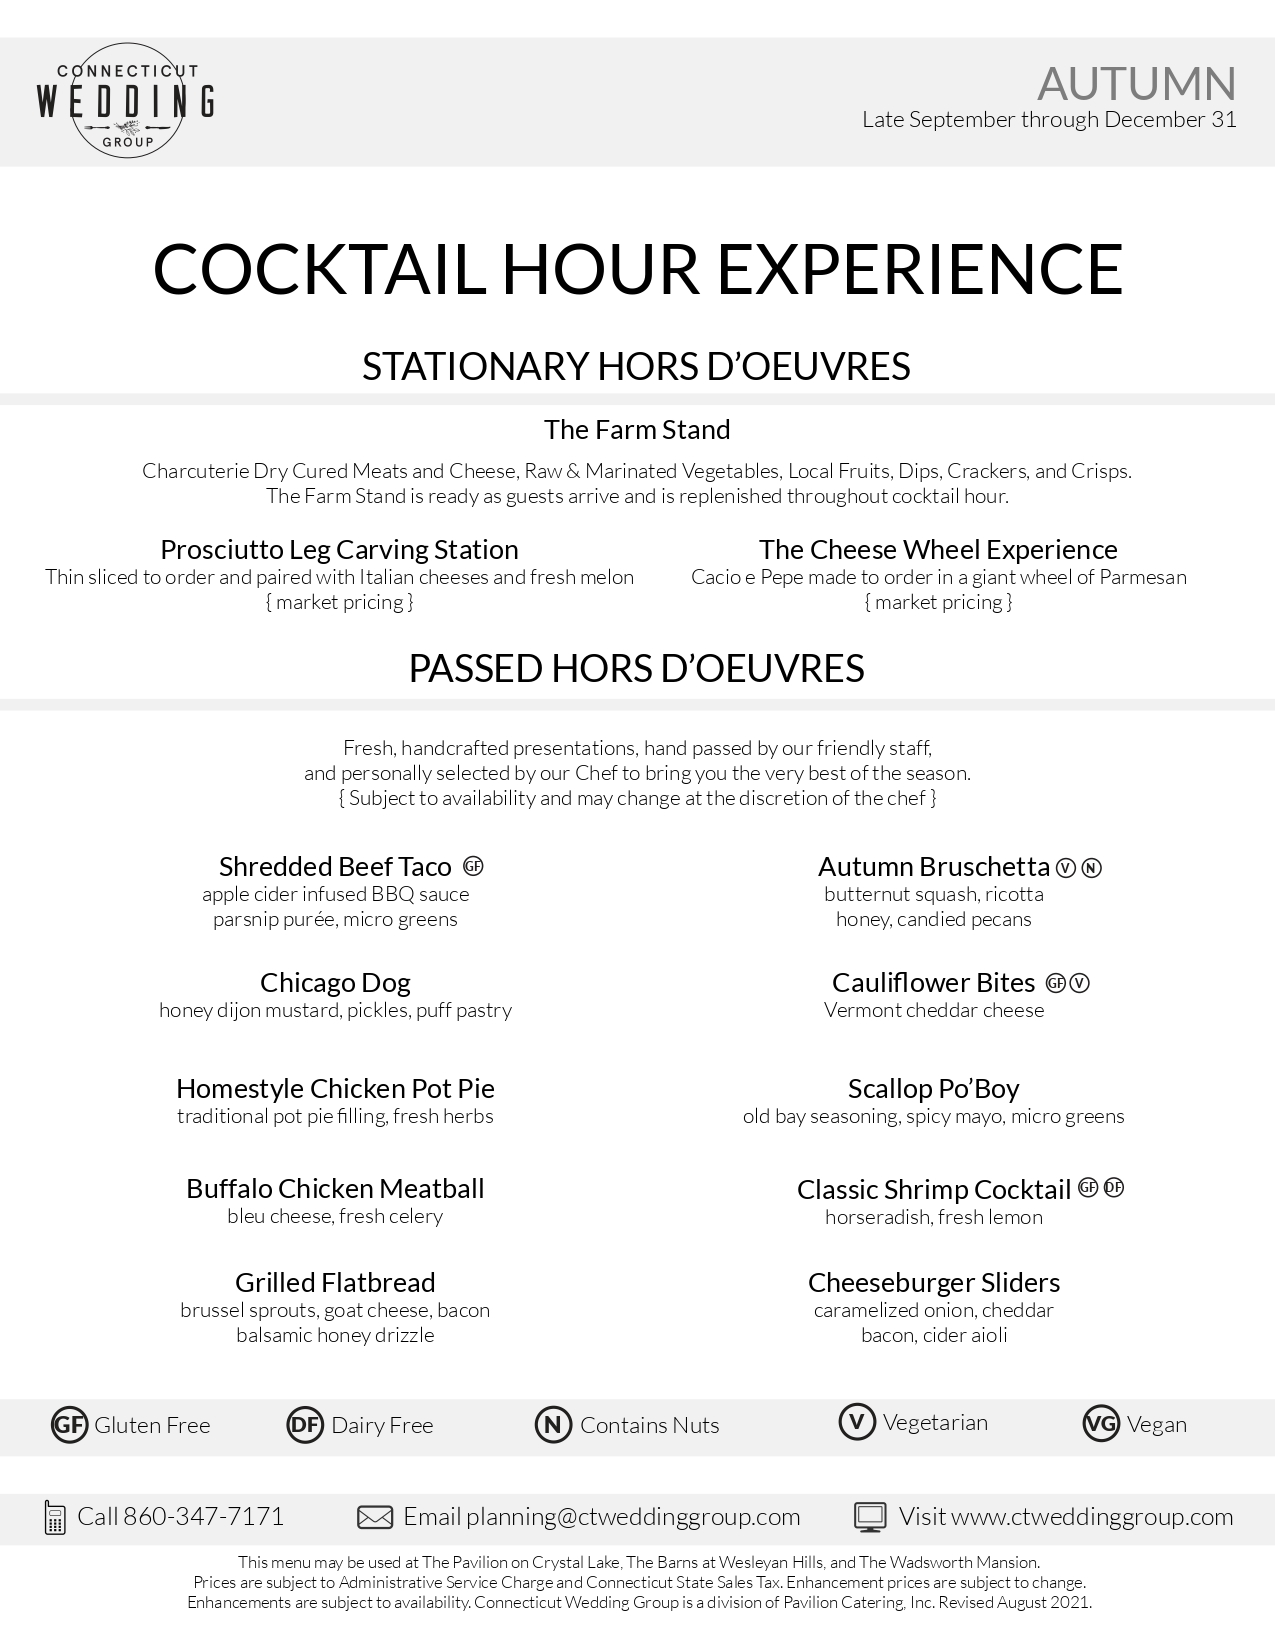 Autumn-Cocktail-Hour-Culinary-Experiences-2022_page-0001